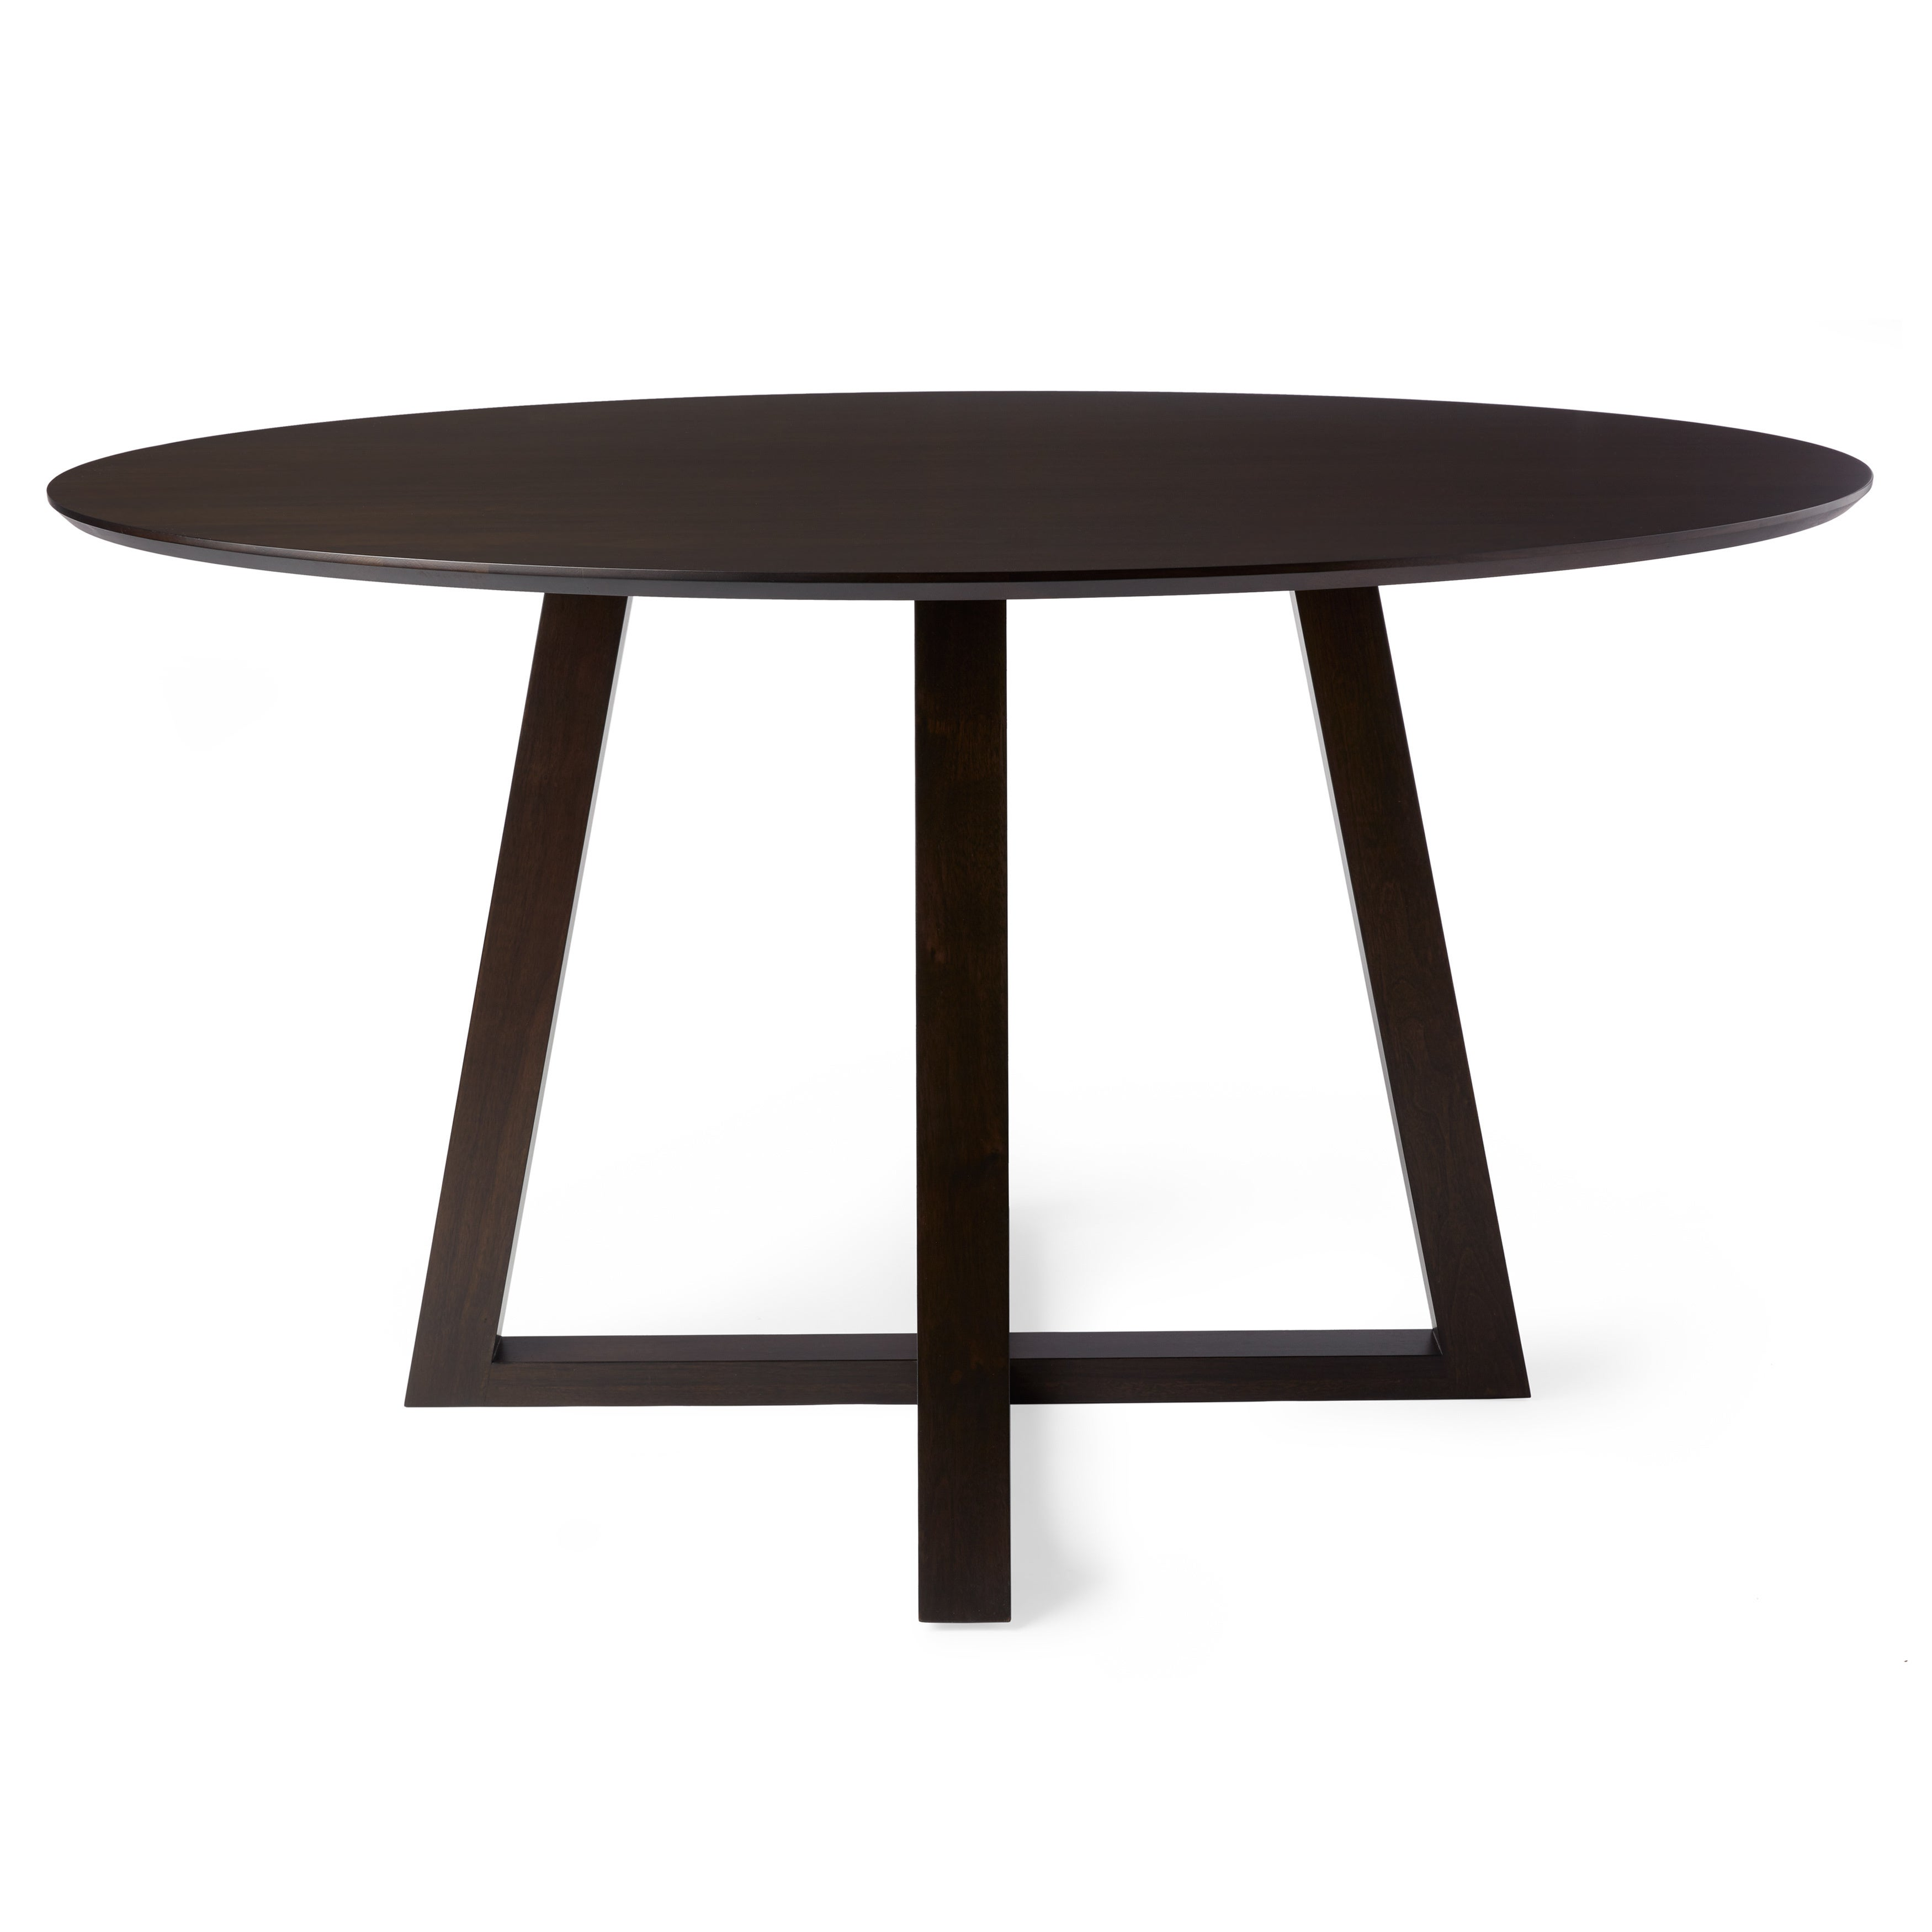 Shop Calvin Klein Clarkson Round Dining Table   Free Shipping Today    Overstock.com   12899704